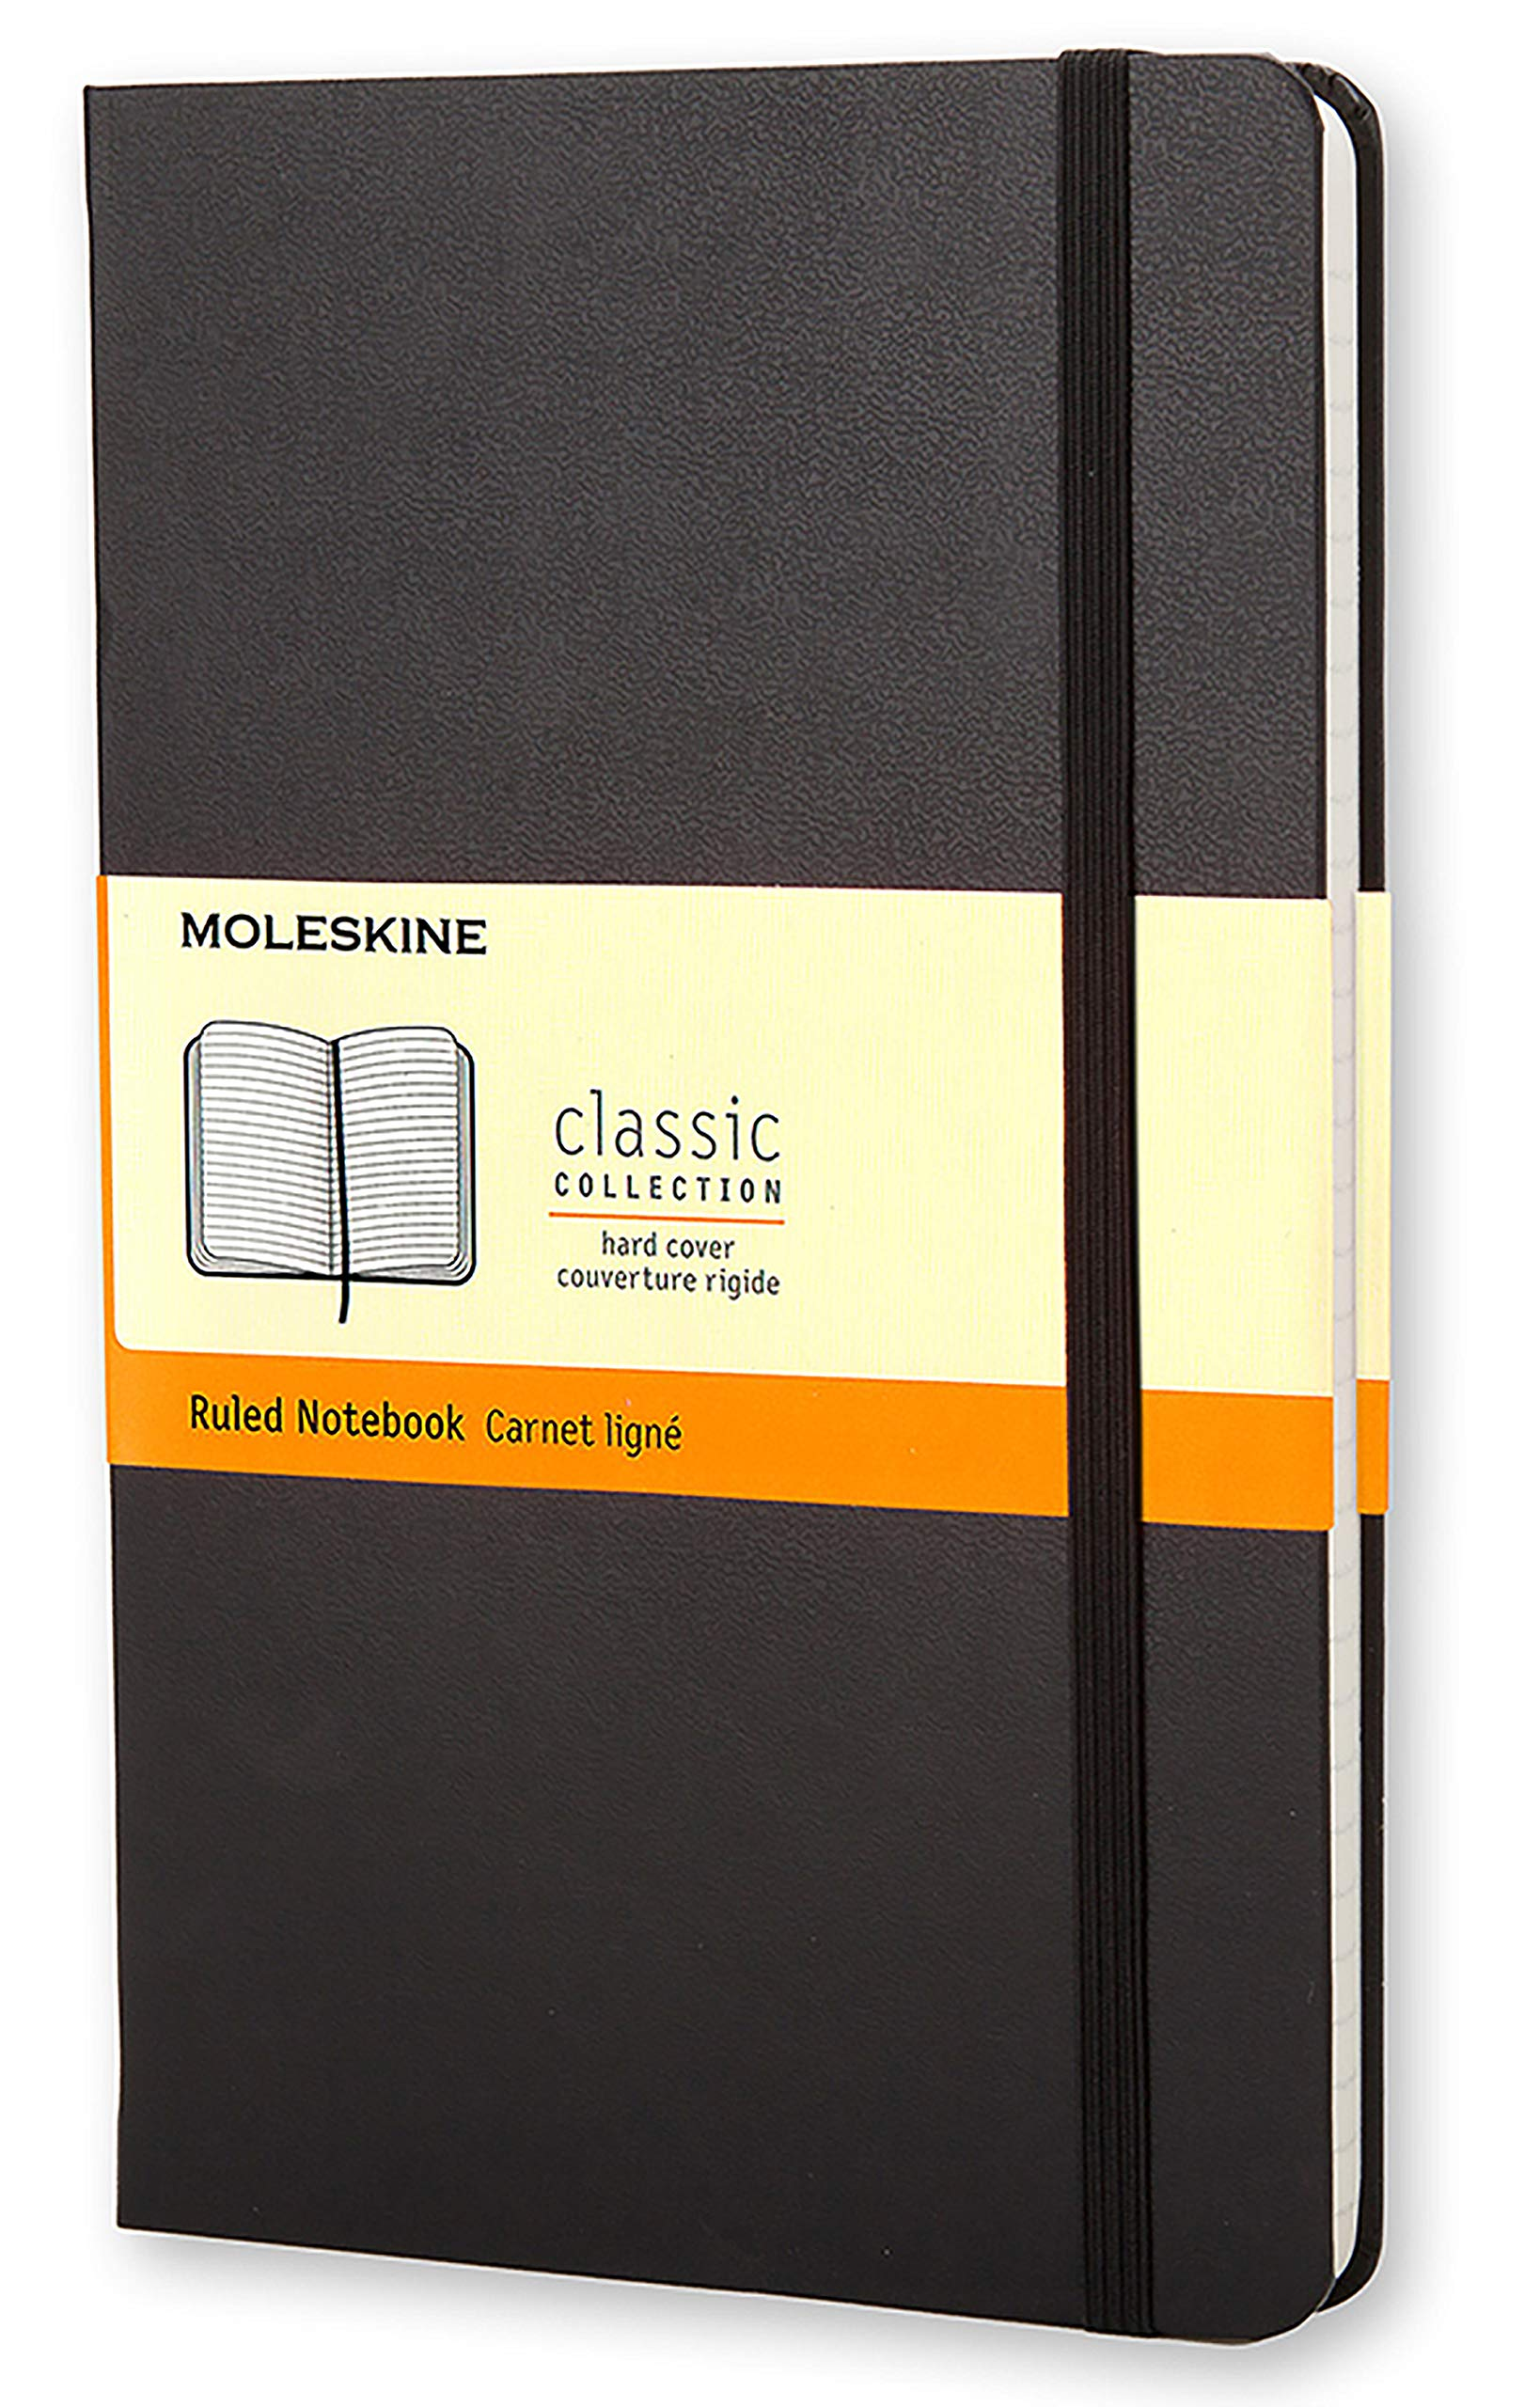 Moleskine Classic Notebook, Hard Cover, Large (5'' x 8.25'') Ruled/Lined, Black by Moleskine